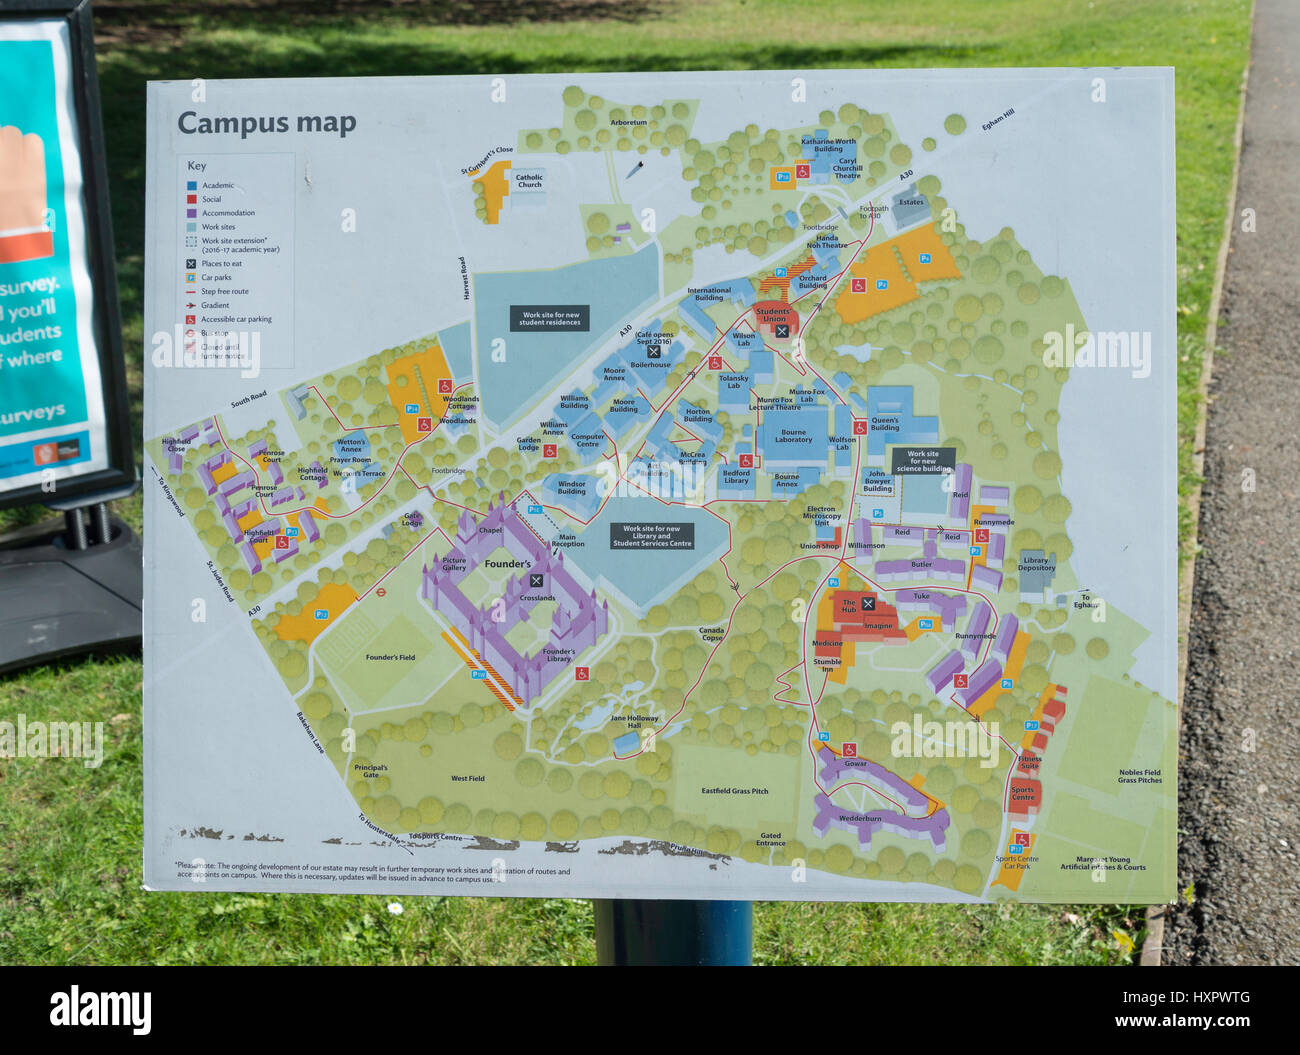 Campus map at Royal Holloway University of London Egham Hill